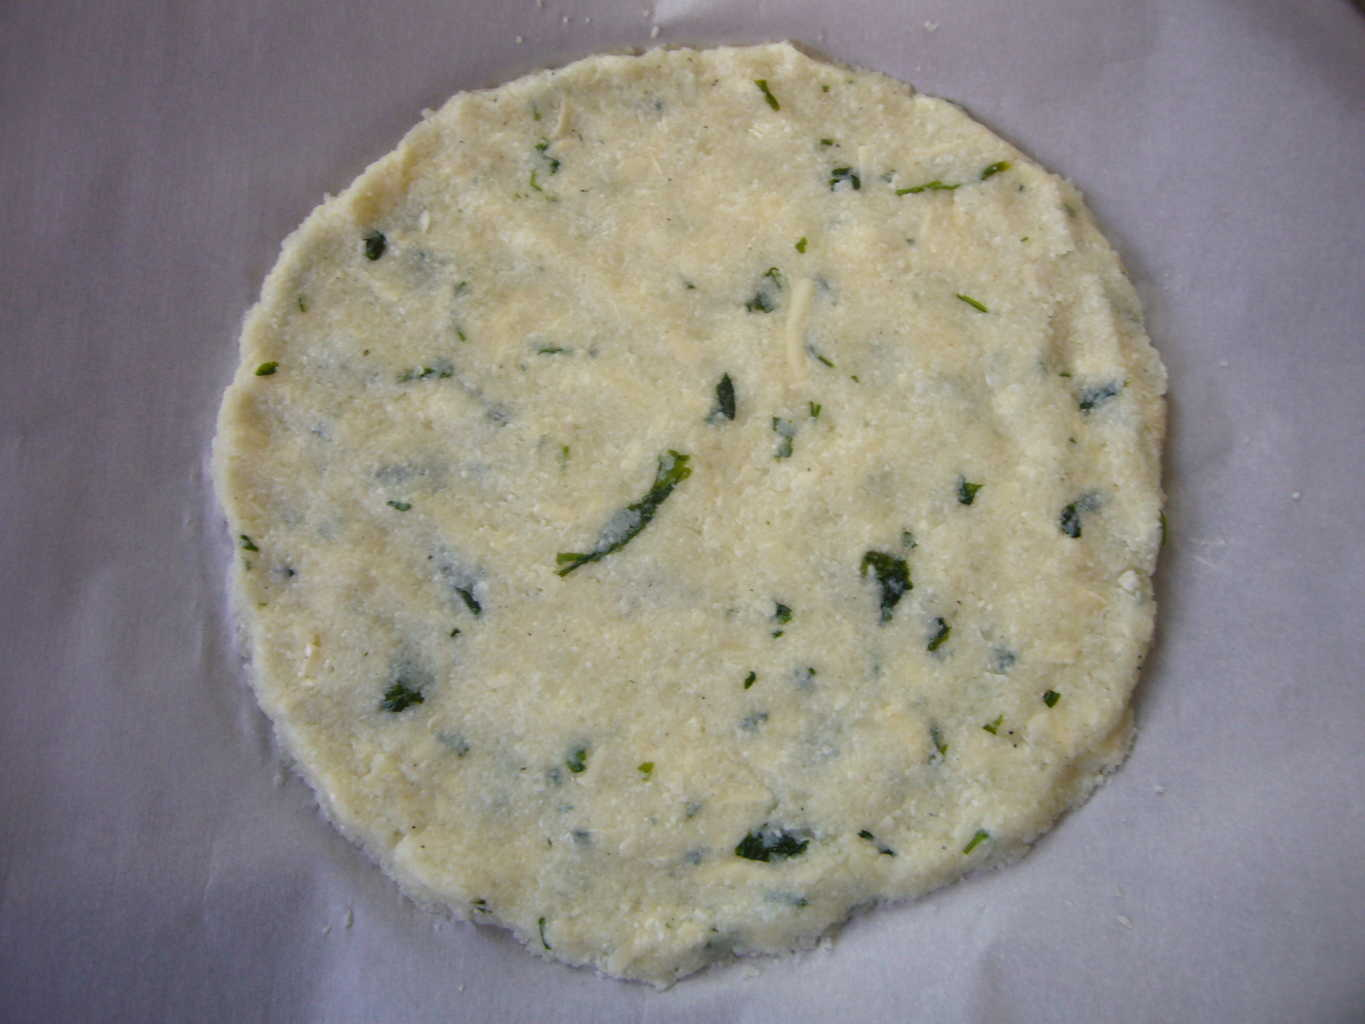 Cauliflower pizza crust mixture shaped for making a pizza.